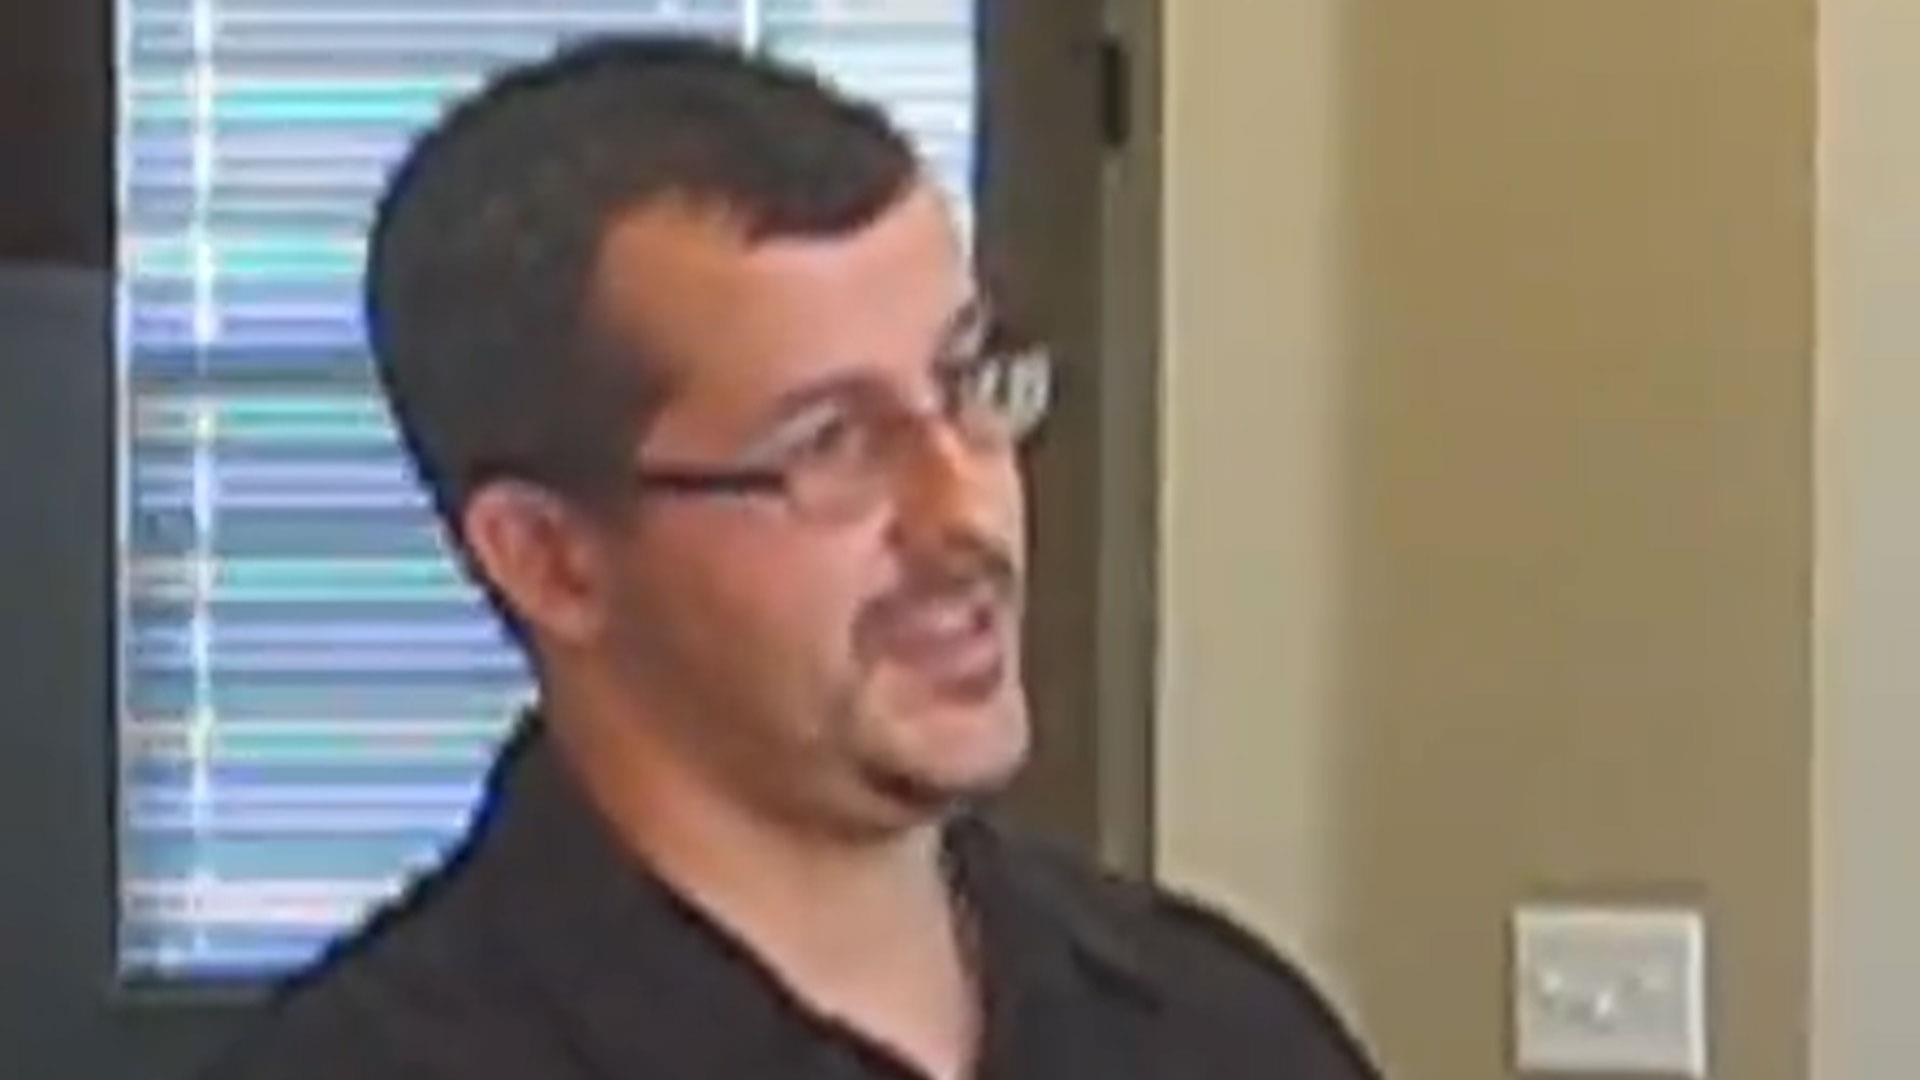 Colorado family murder suspect Chris Watts gives relationship advice in  2012 video